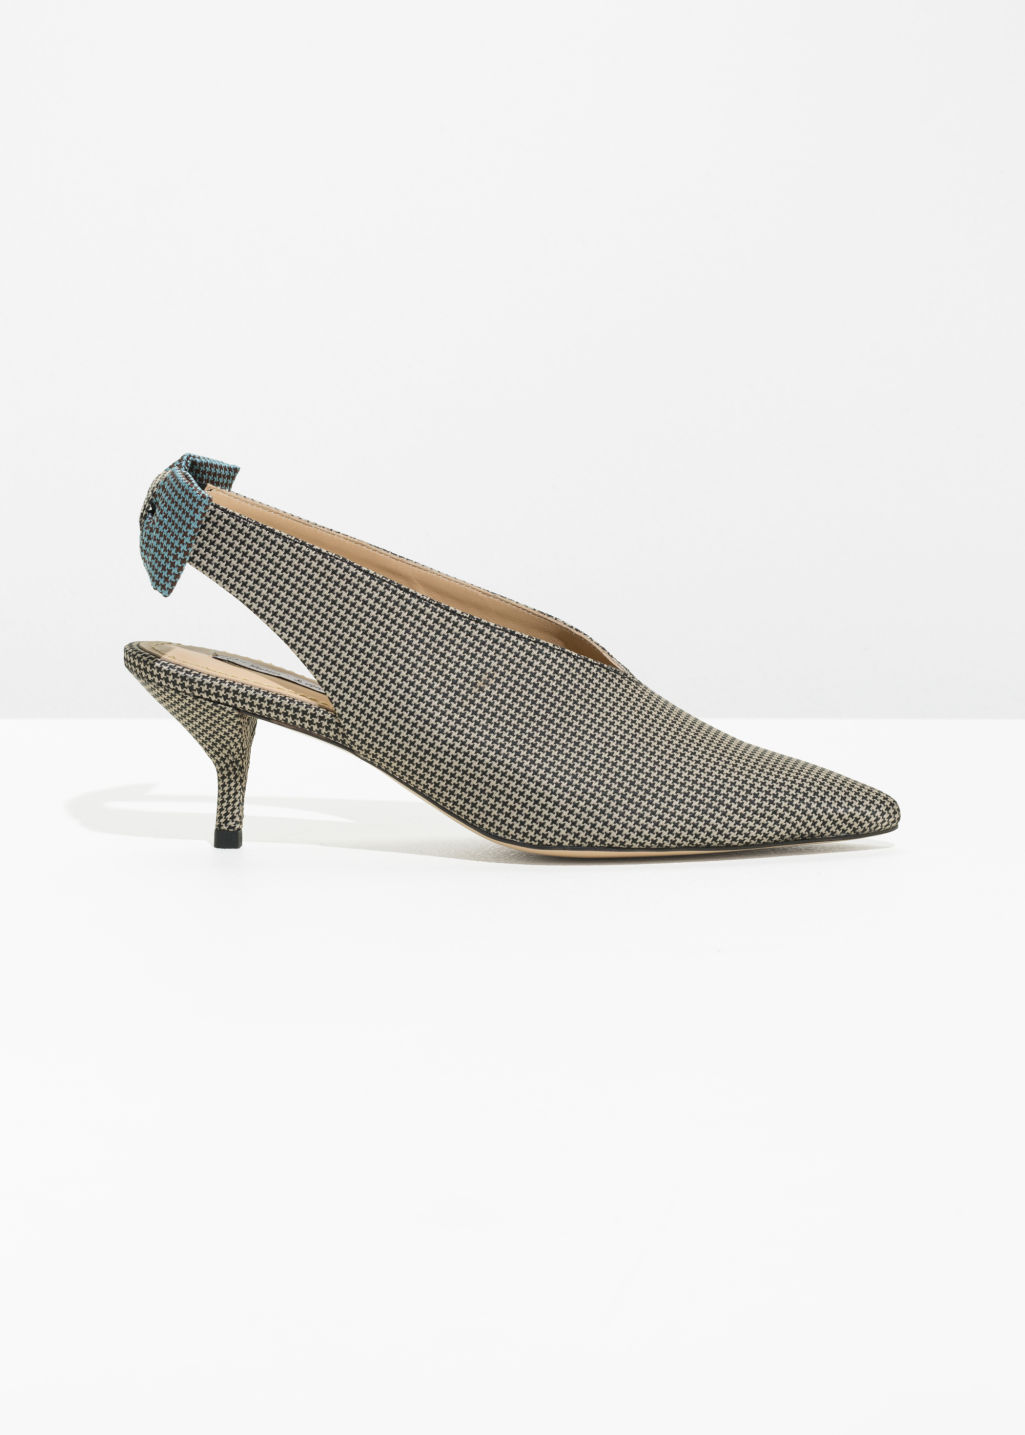 & OTHER STORIES Kitten Heel Slingback Pumps - Grey a9OX7aeRQ